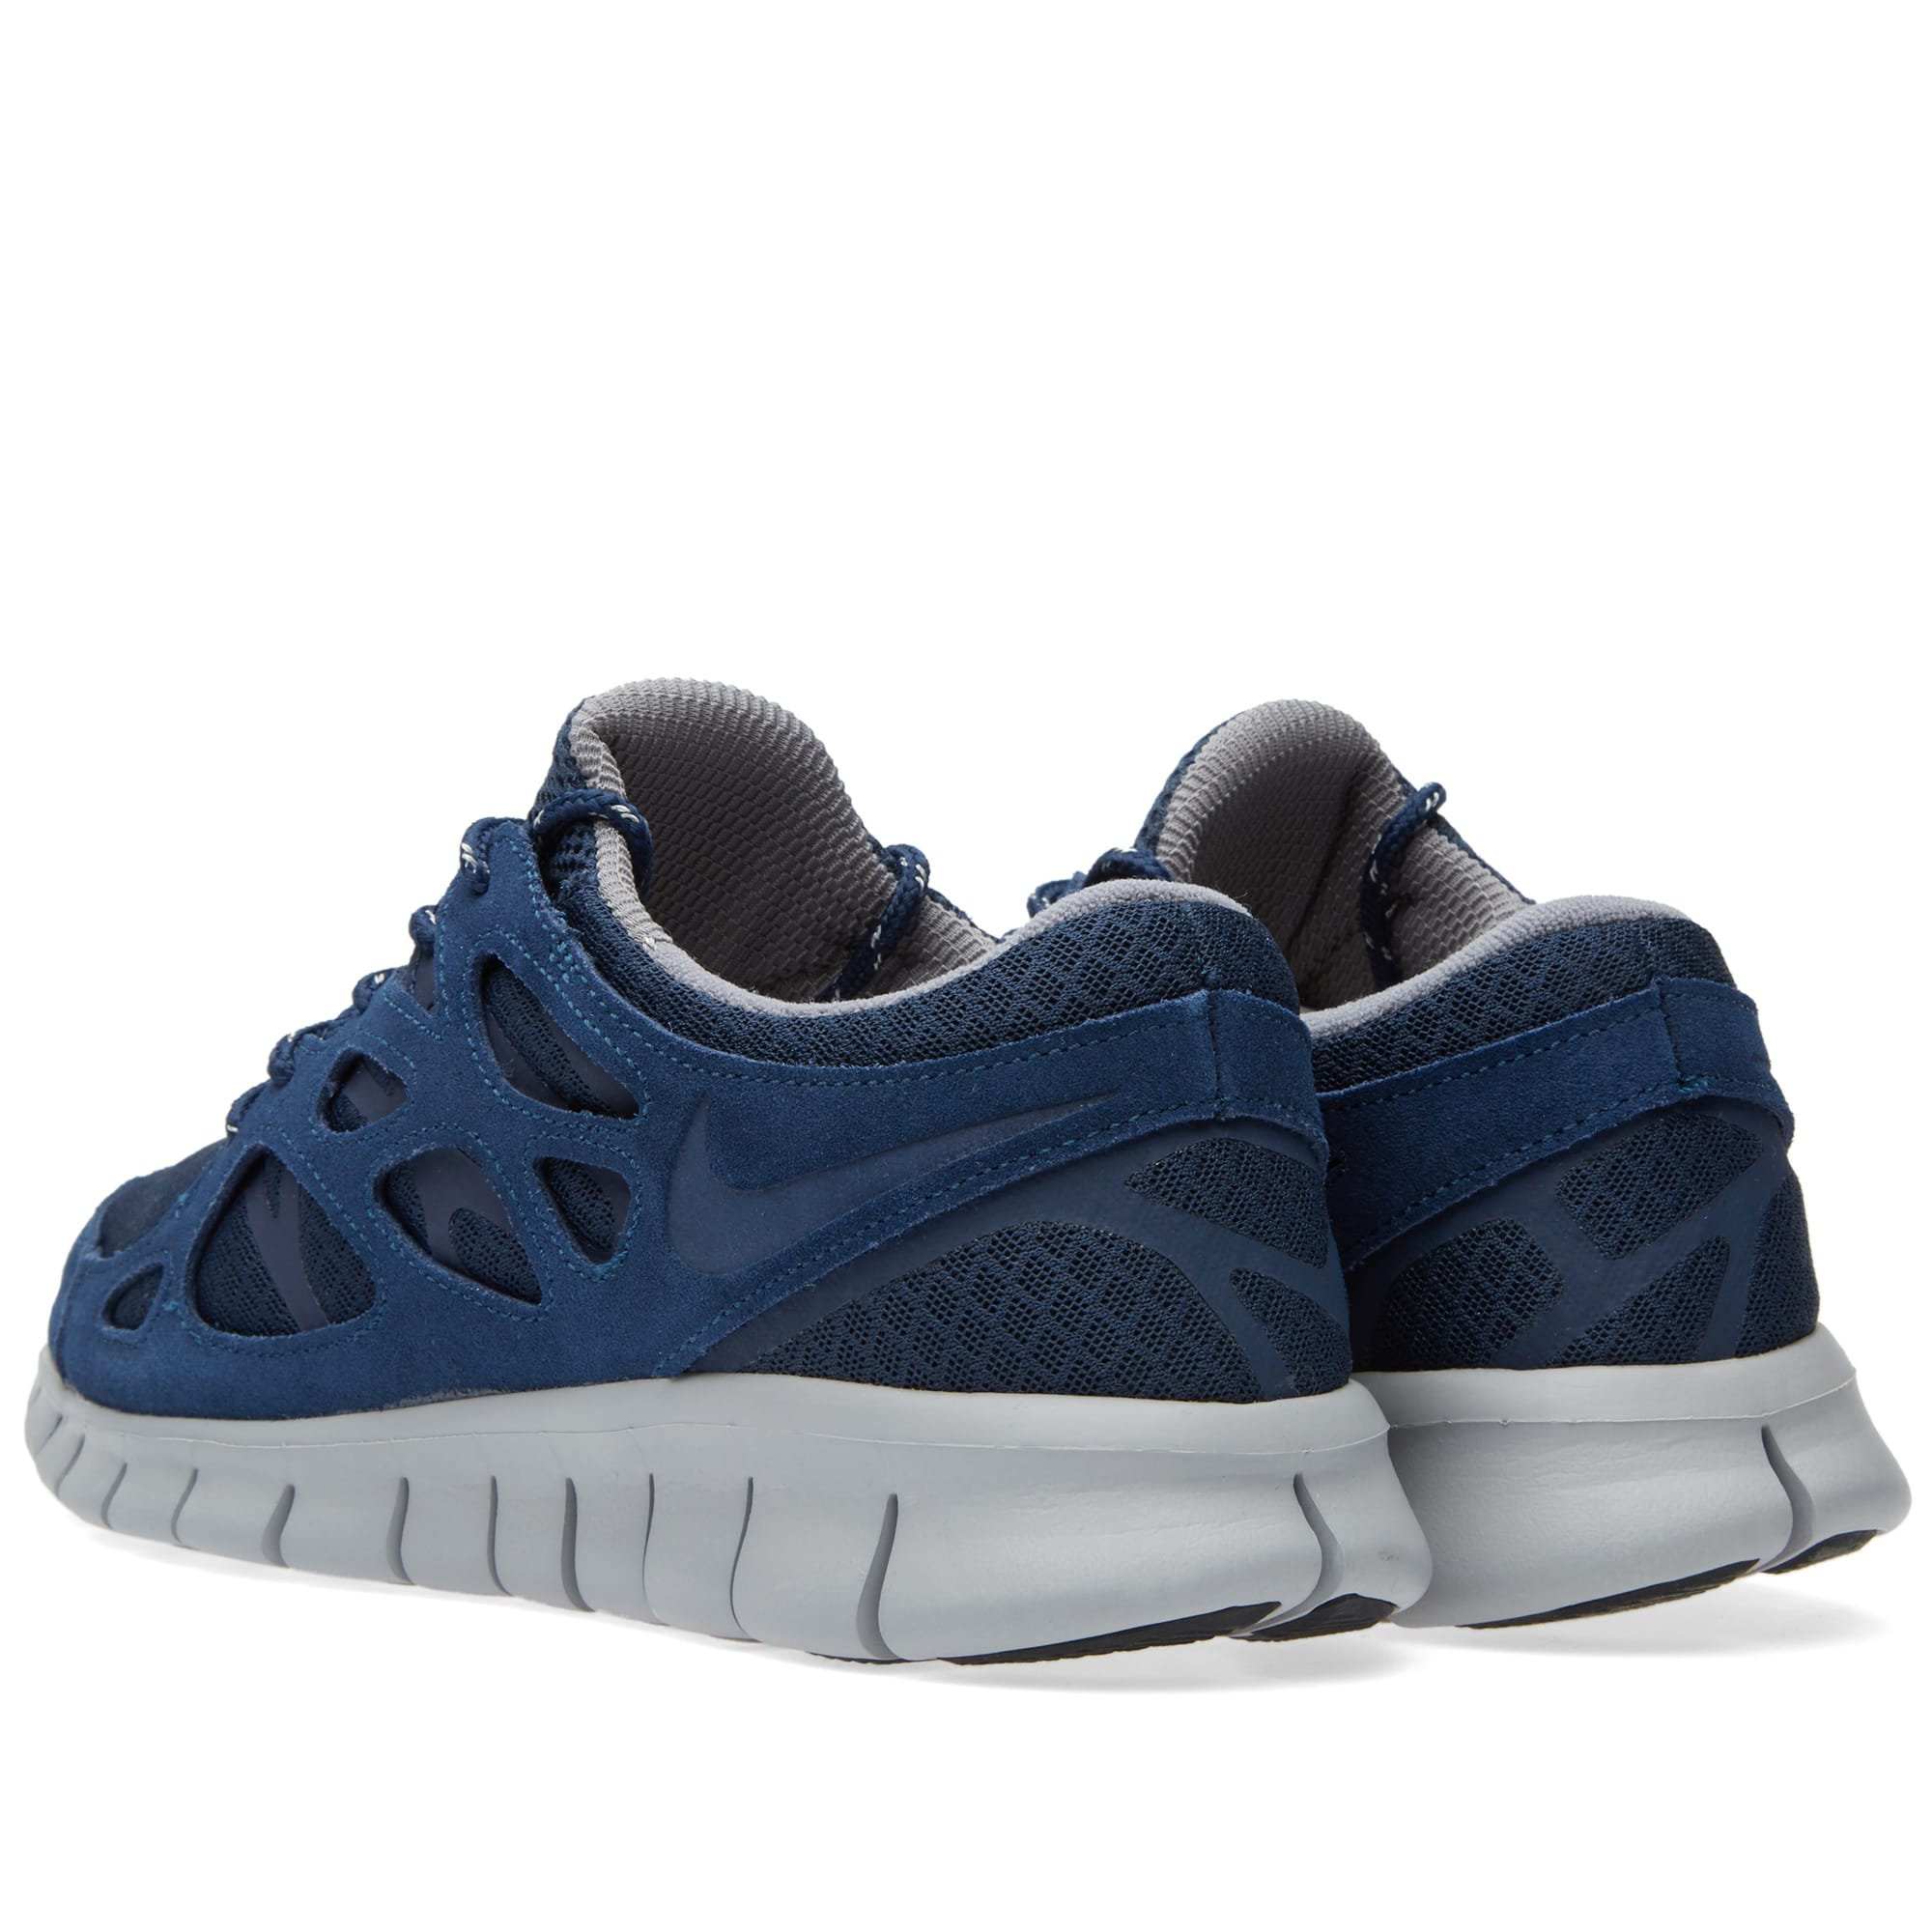 8d73a62ee7d8 Nike Free Run 2 Midnight Navy   Silver